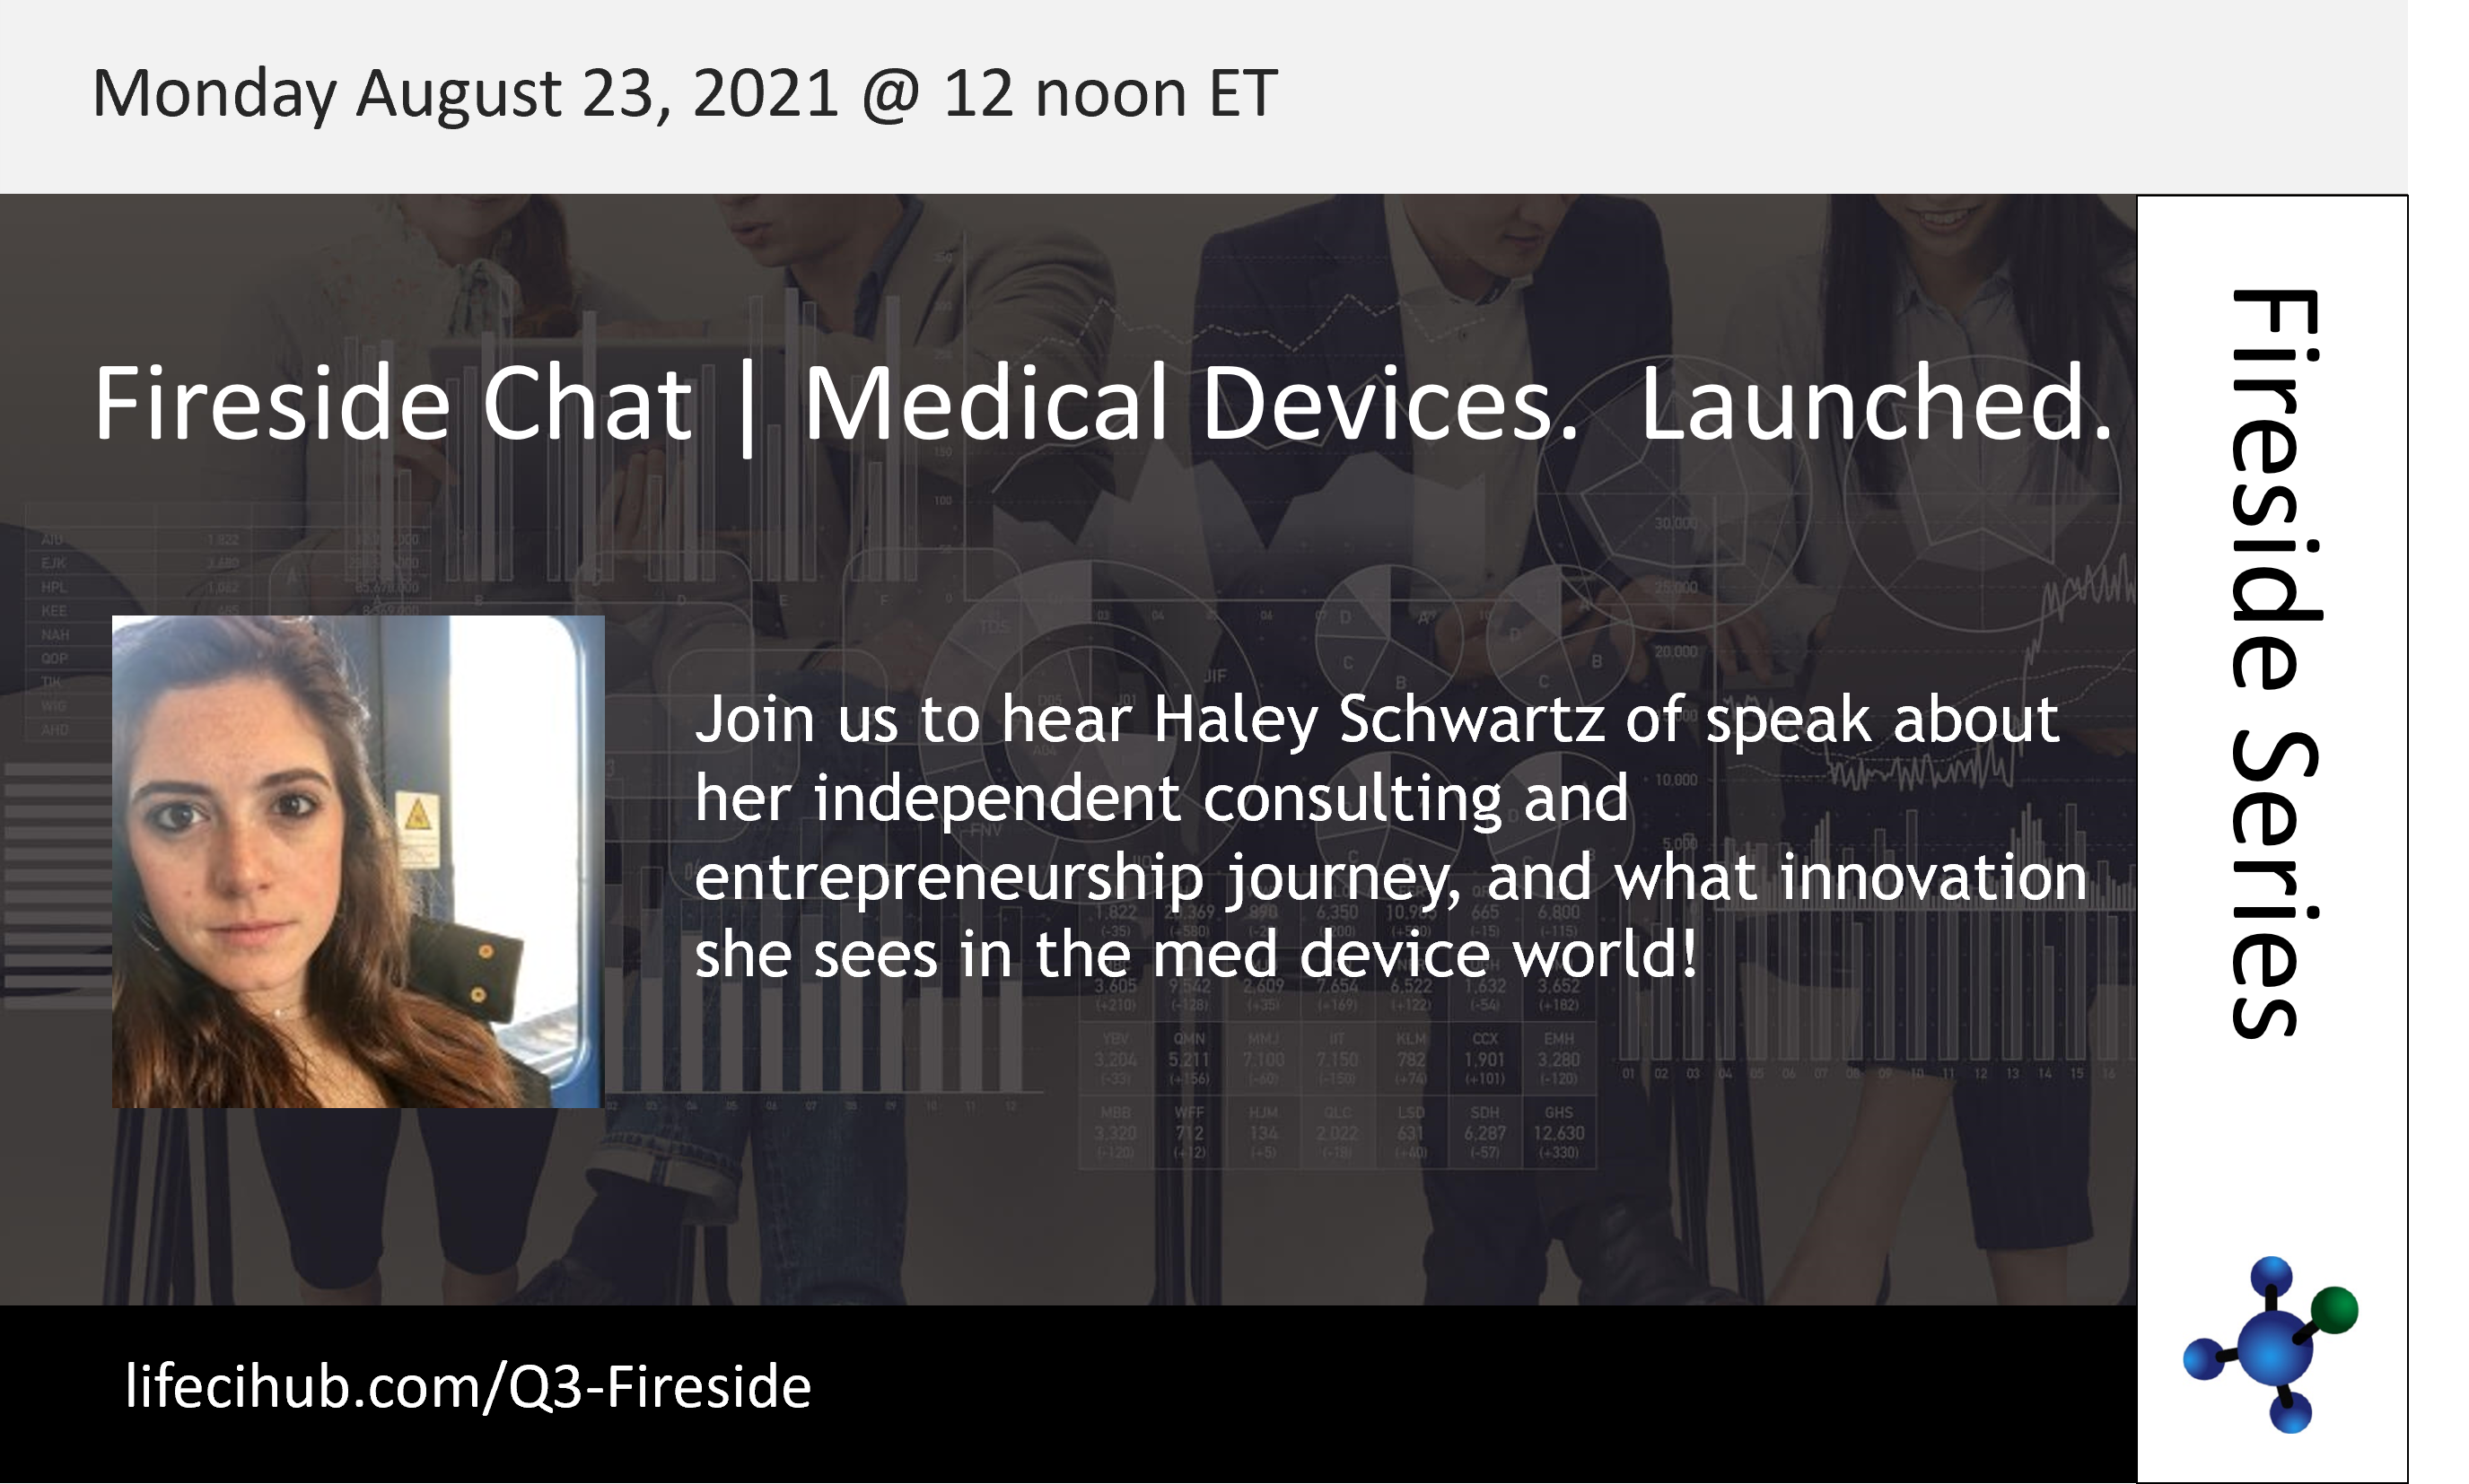 LifeSciHub Fireside Chat Aug 23 2021:  Medical Devices.  Launched.  With Haley Schwartz